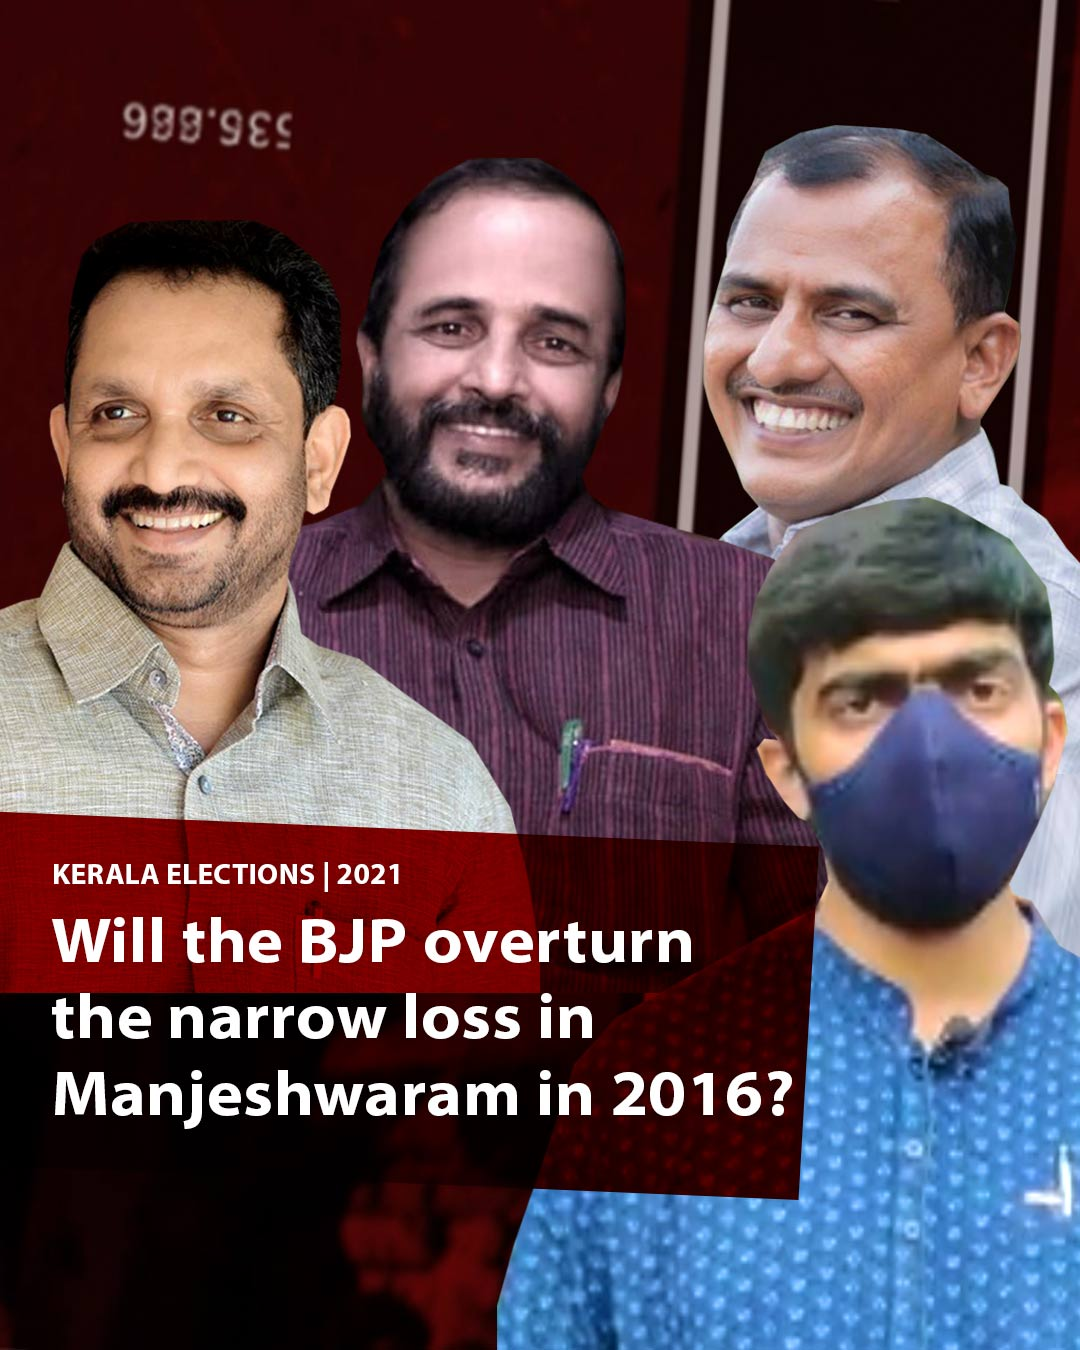 Ground report: In a polarised Manjeshwaram, BJP hopes to wrest an IUML stronghold